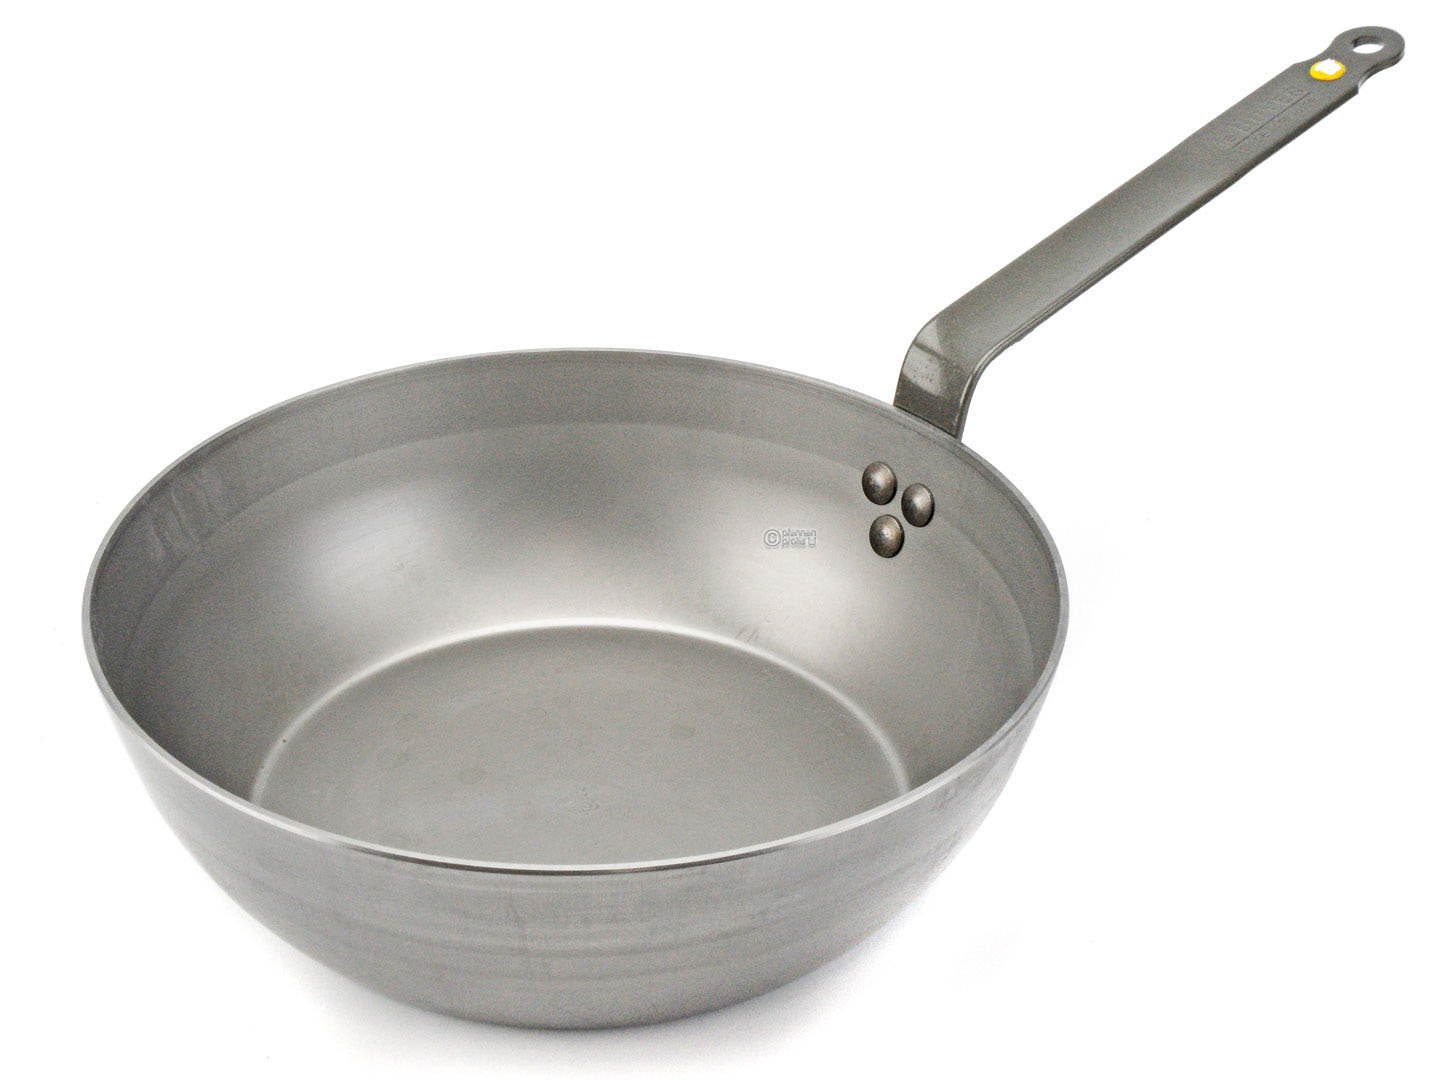 DE BUYER iron country pan MINERAL B ELEMENT 28 cm deep skillet